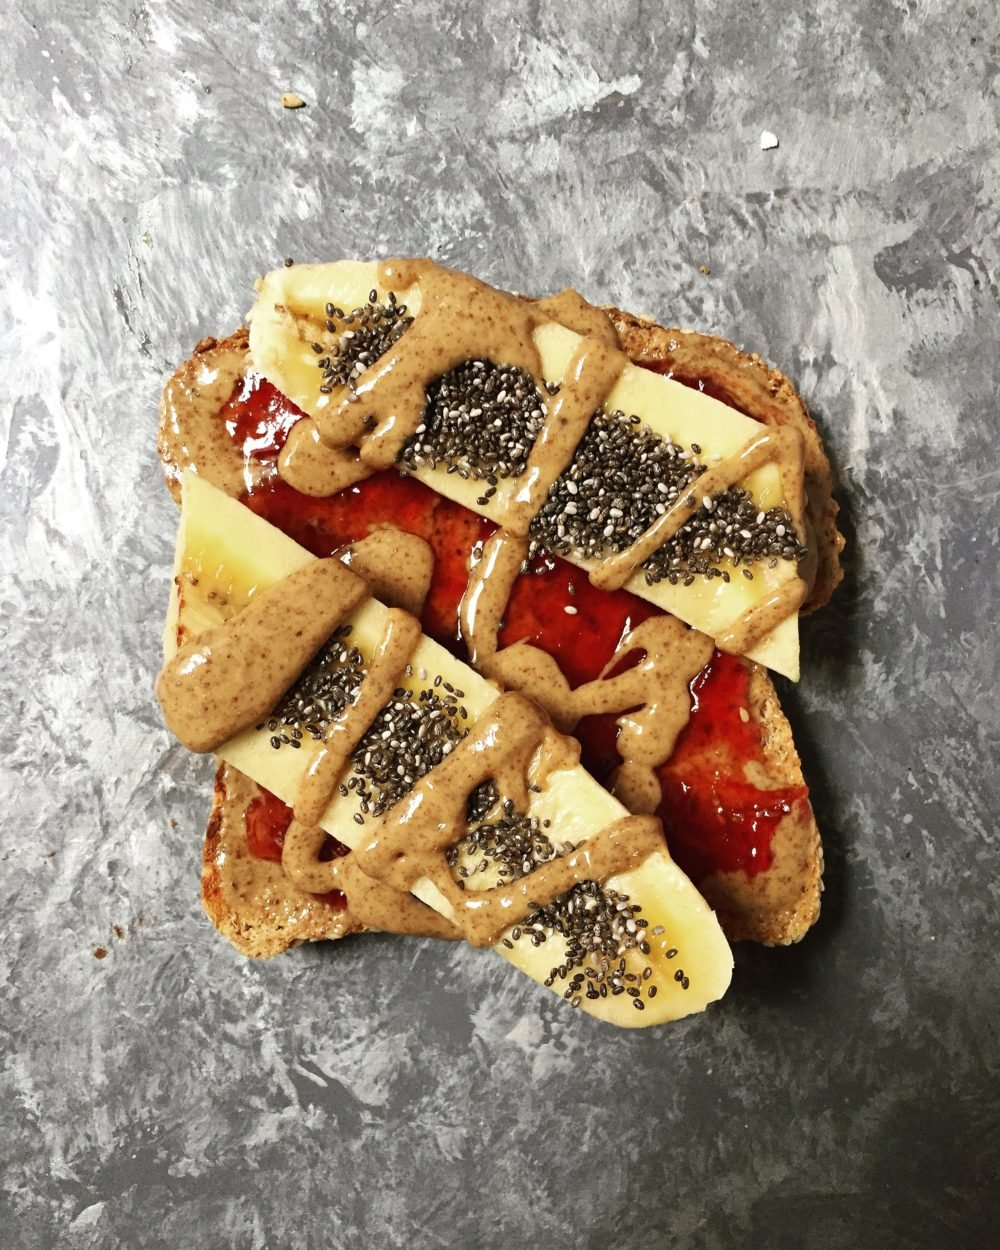 toast with peanut butter, jelly and banana slices